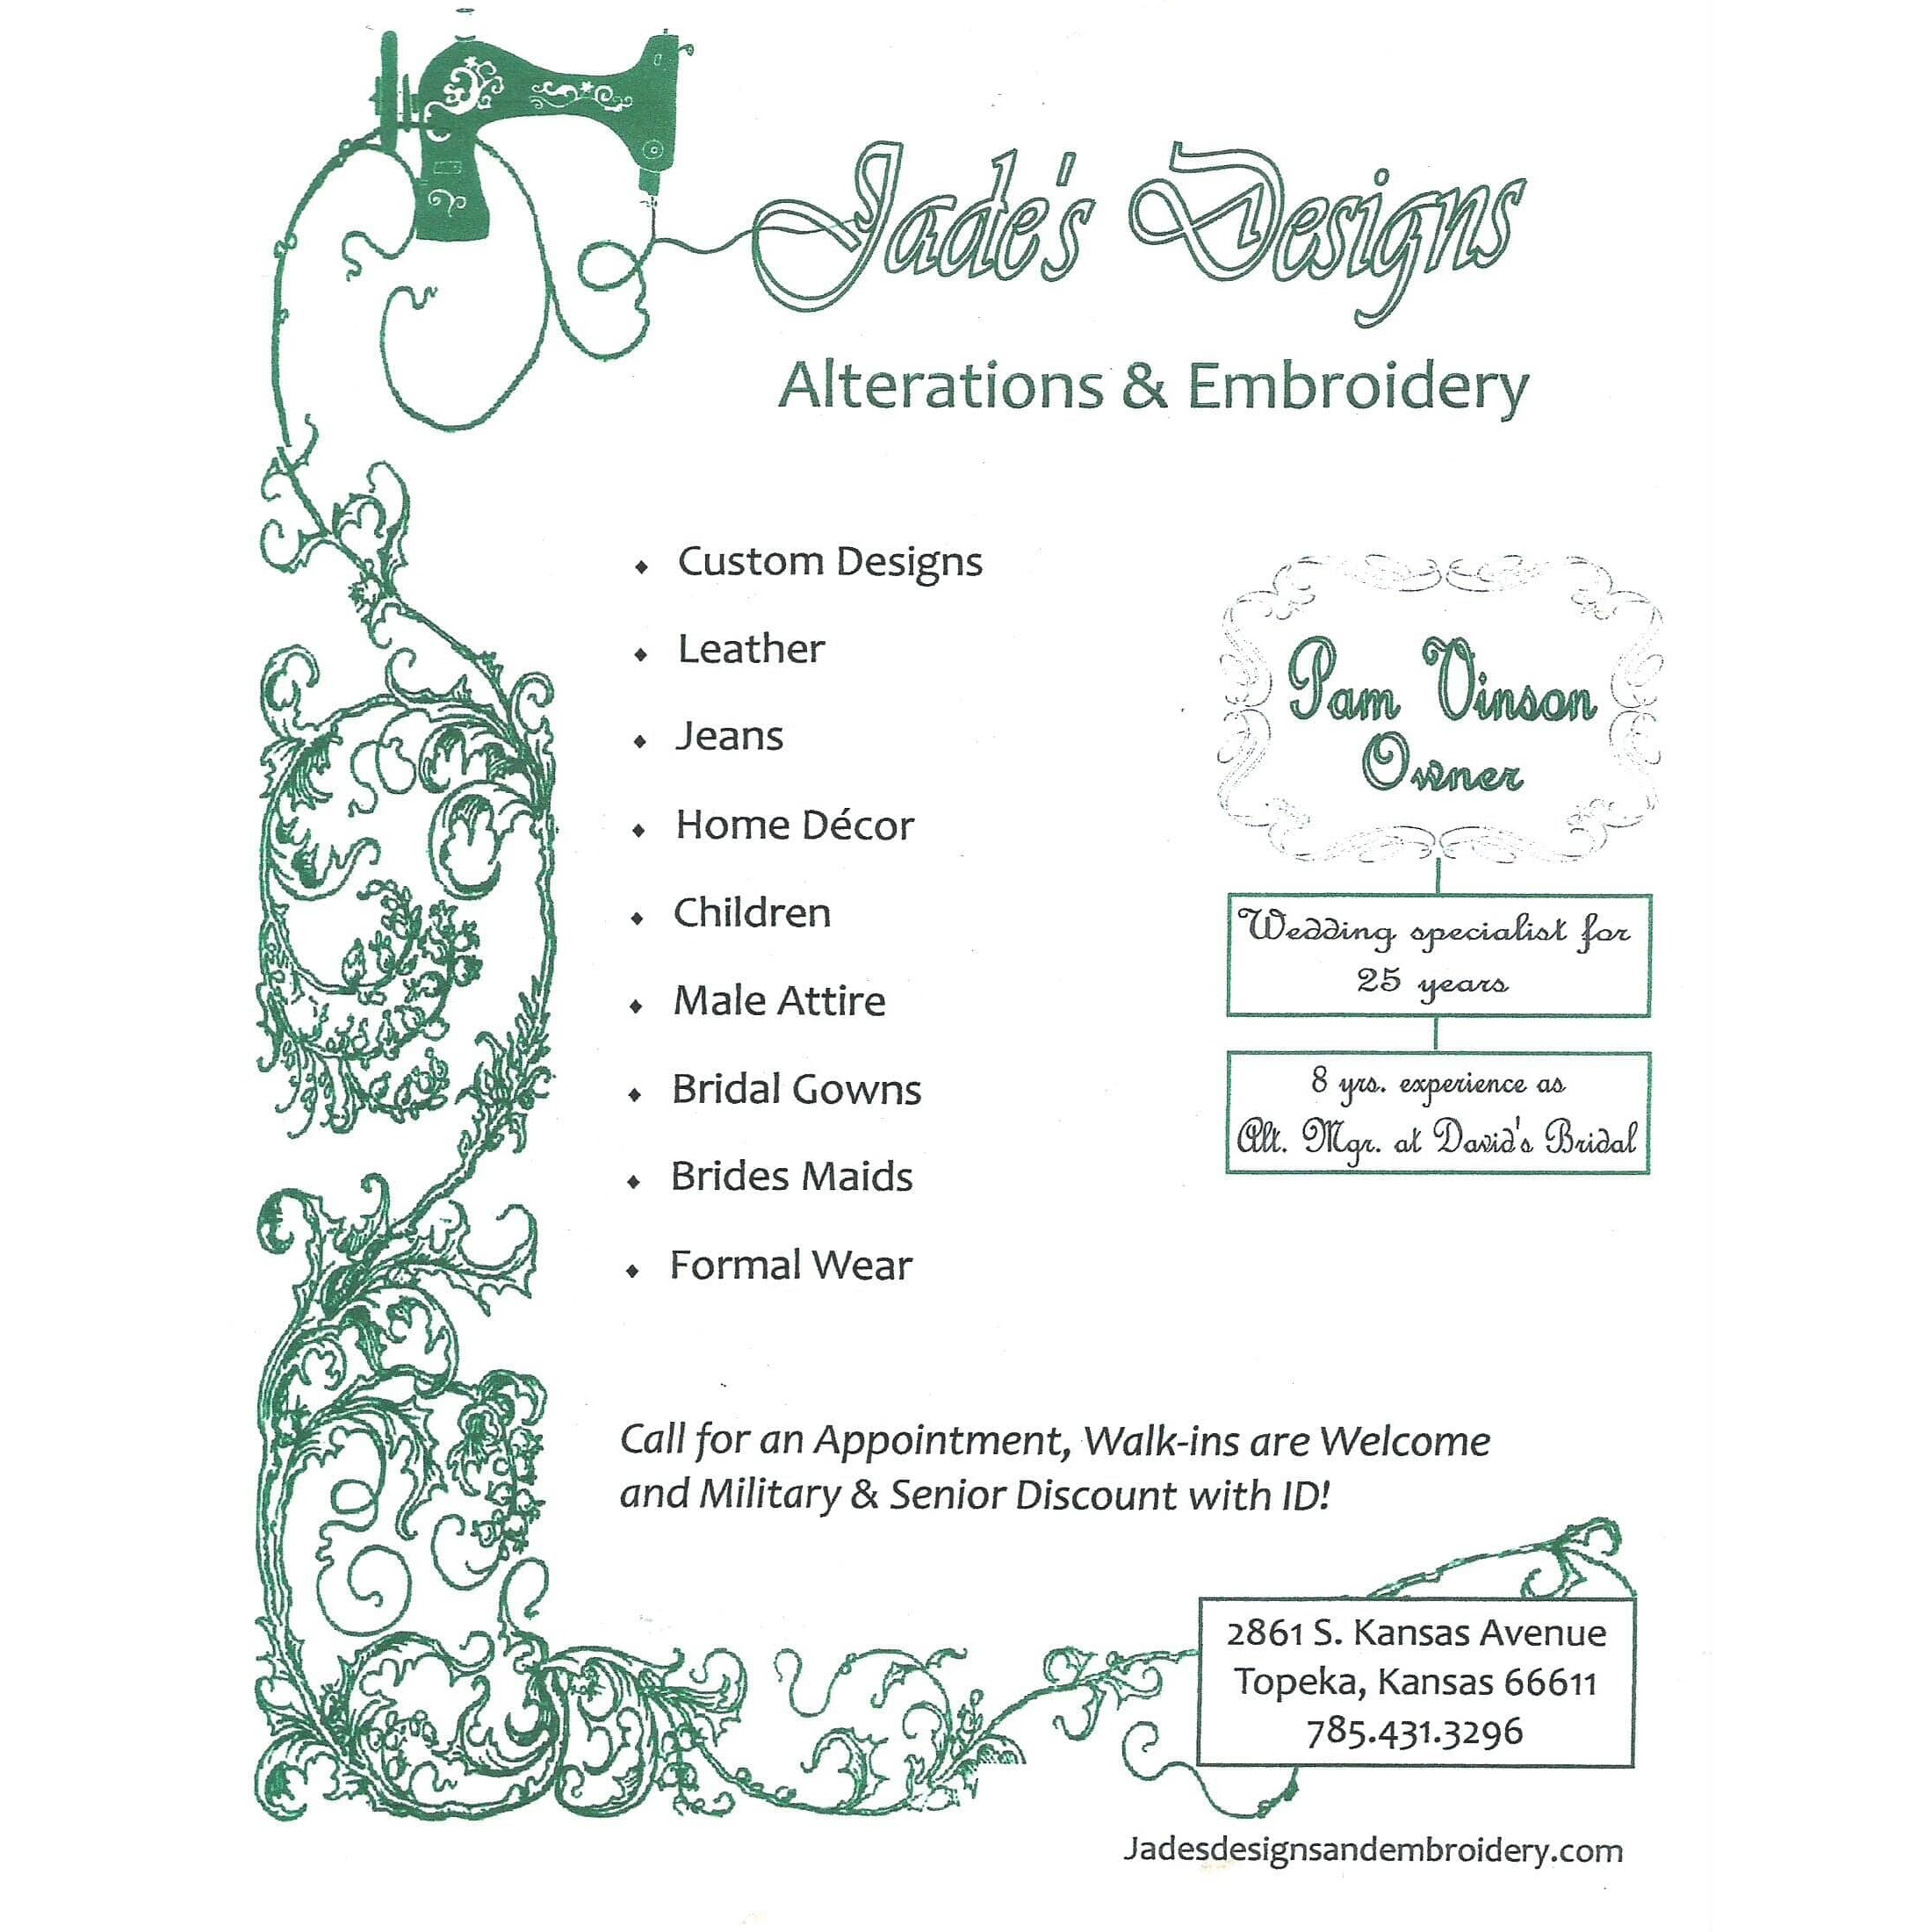 Jade's Designs Alterations & Embroidery LLC